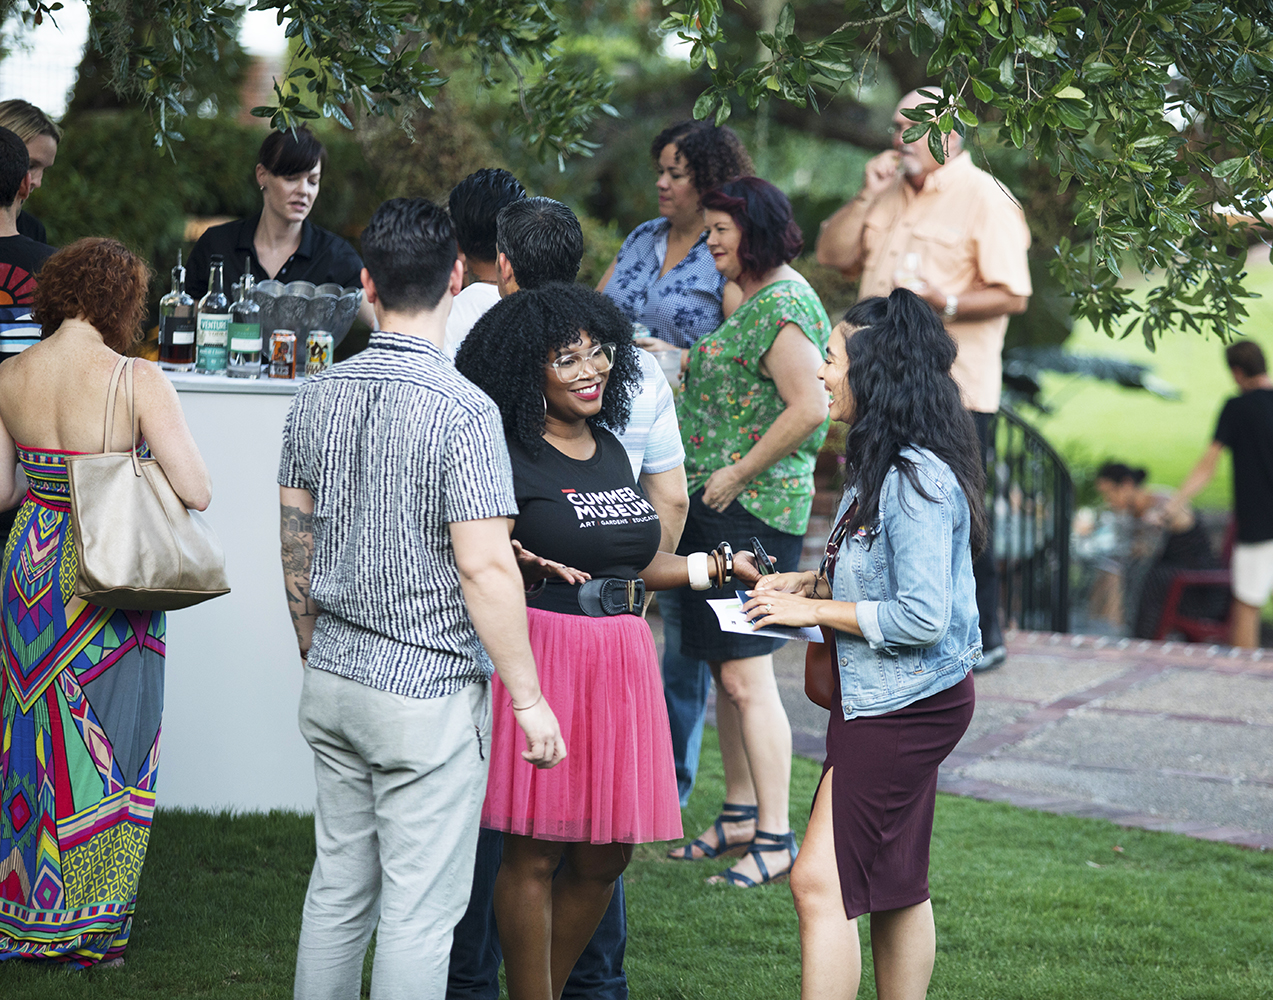 Attendees congregate outside near a bar and engage in conservation.